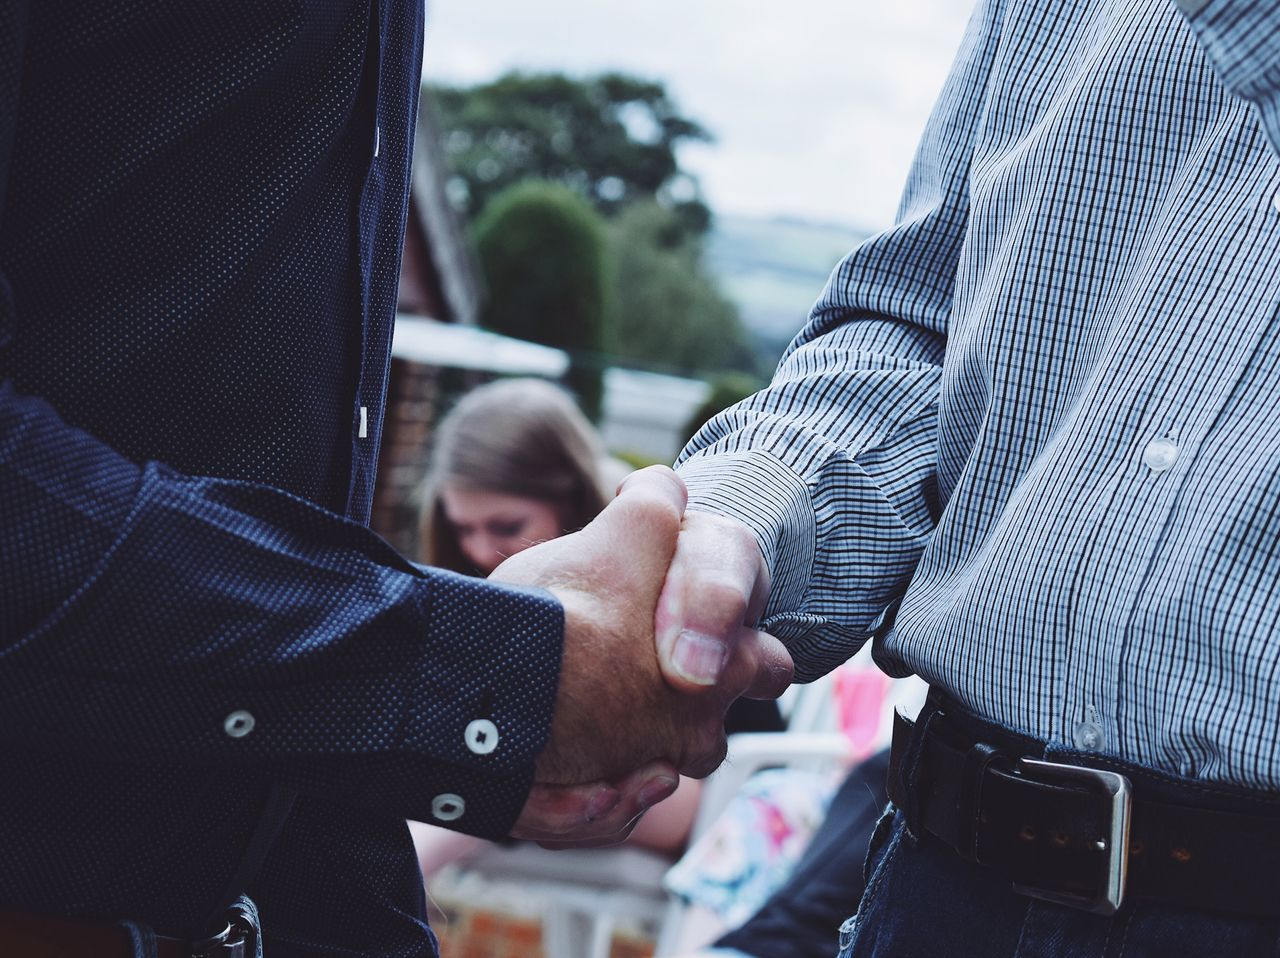 Two People Human Hand Men Togetherness Midsection Day Real People Close-up Human Body Part Well-dressed Adult People Outdoors